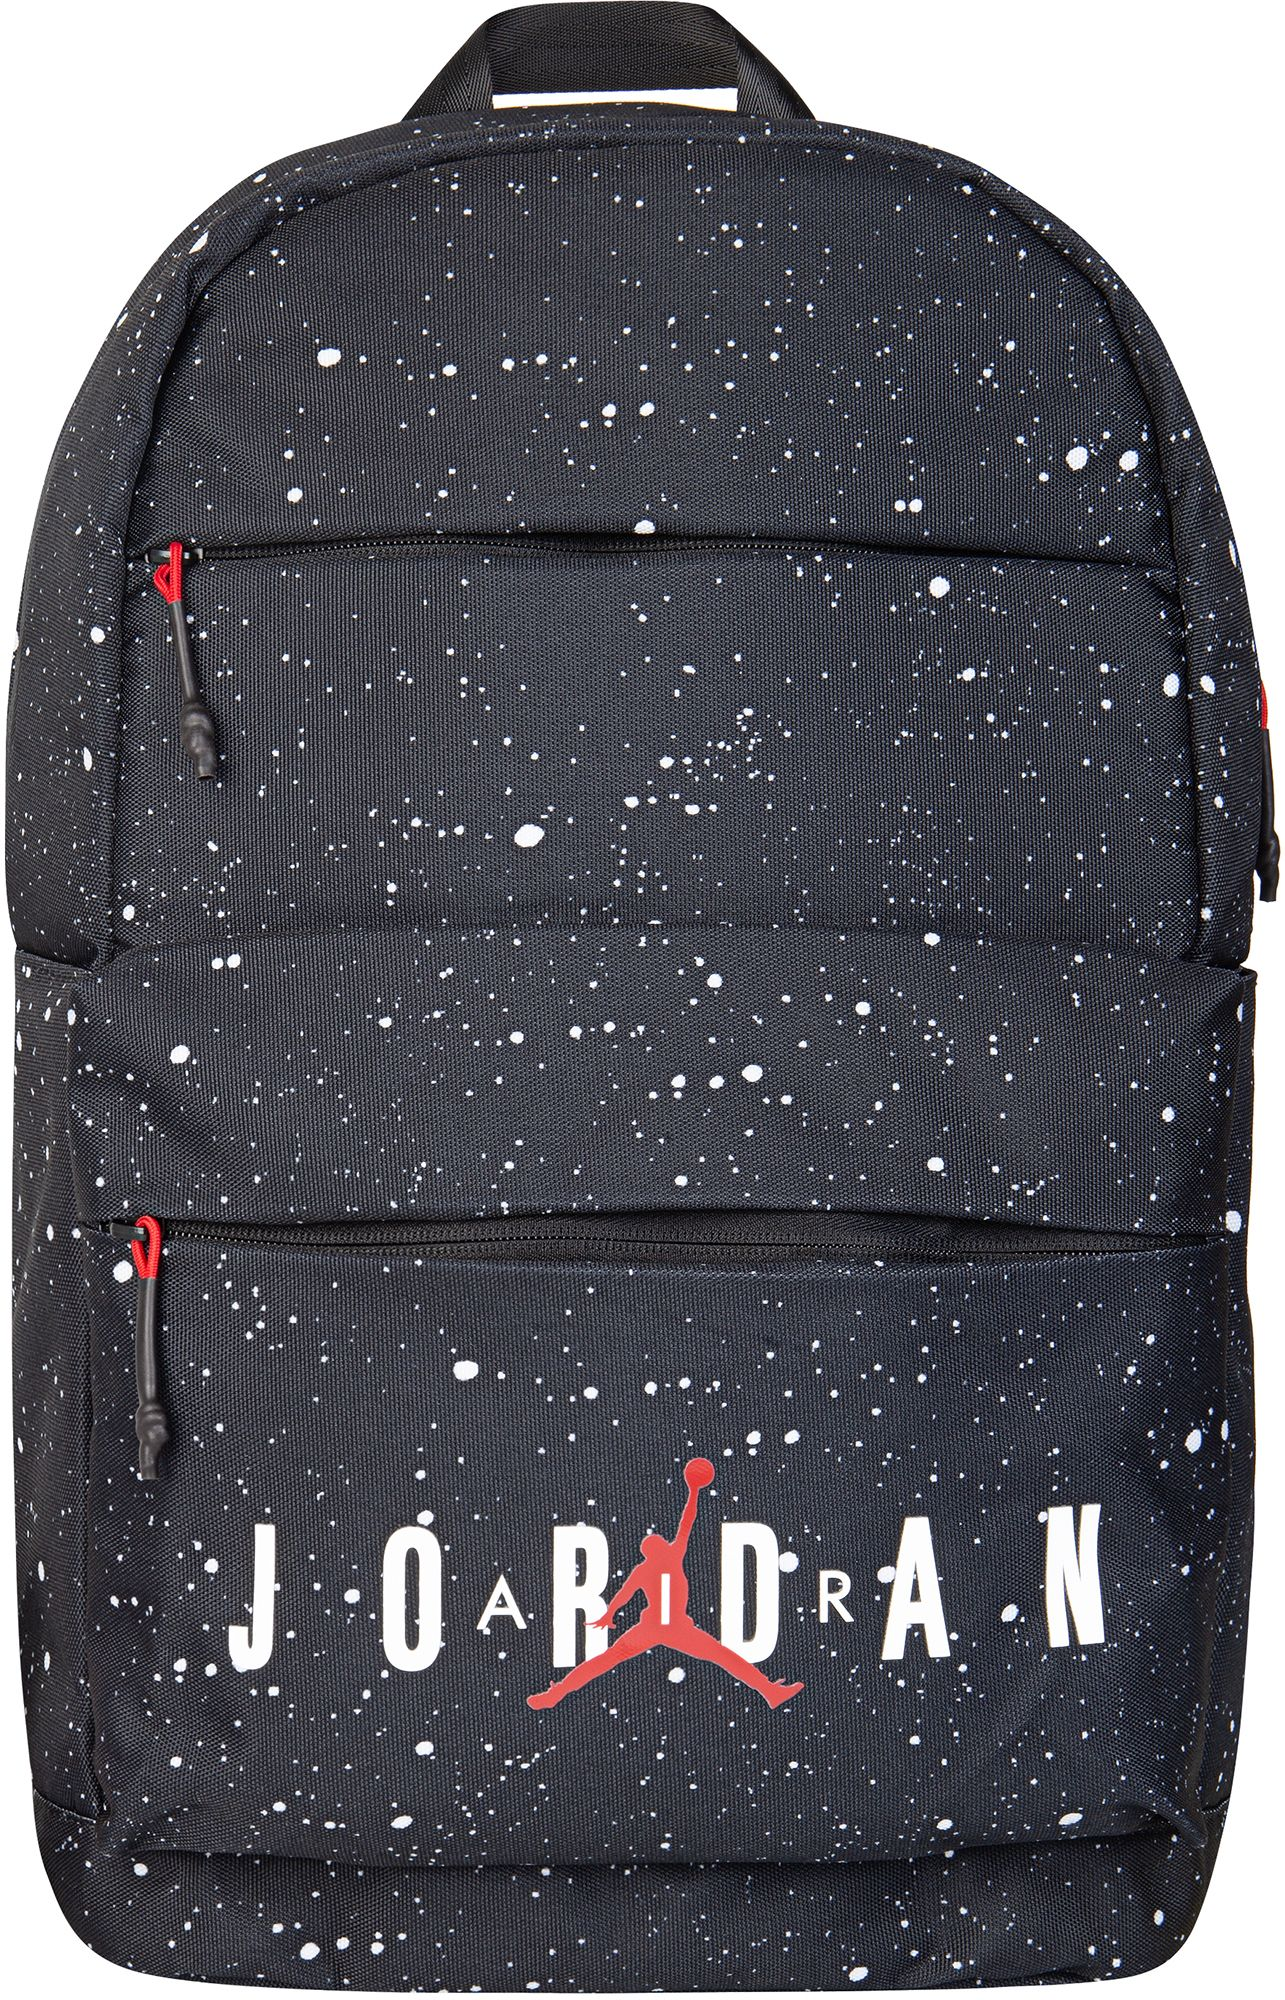 dccad7cb4fece5 Jordan Air Splatter Backpack